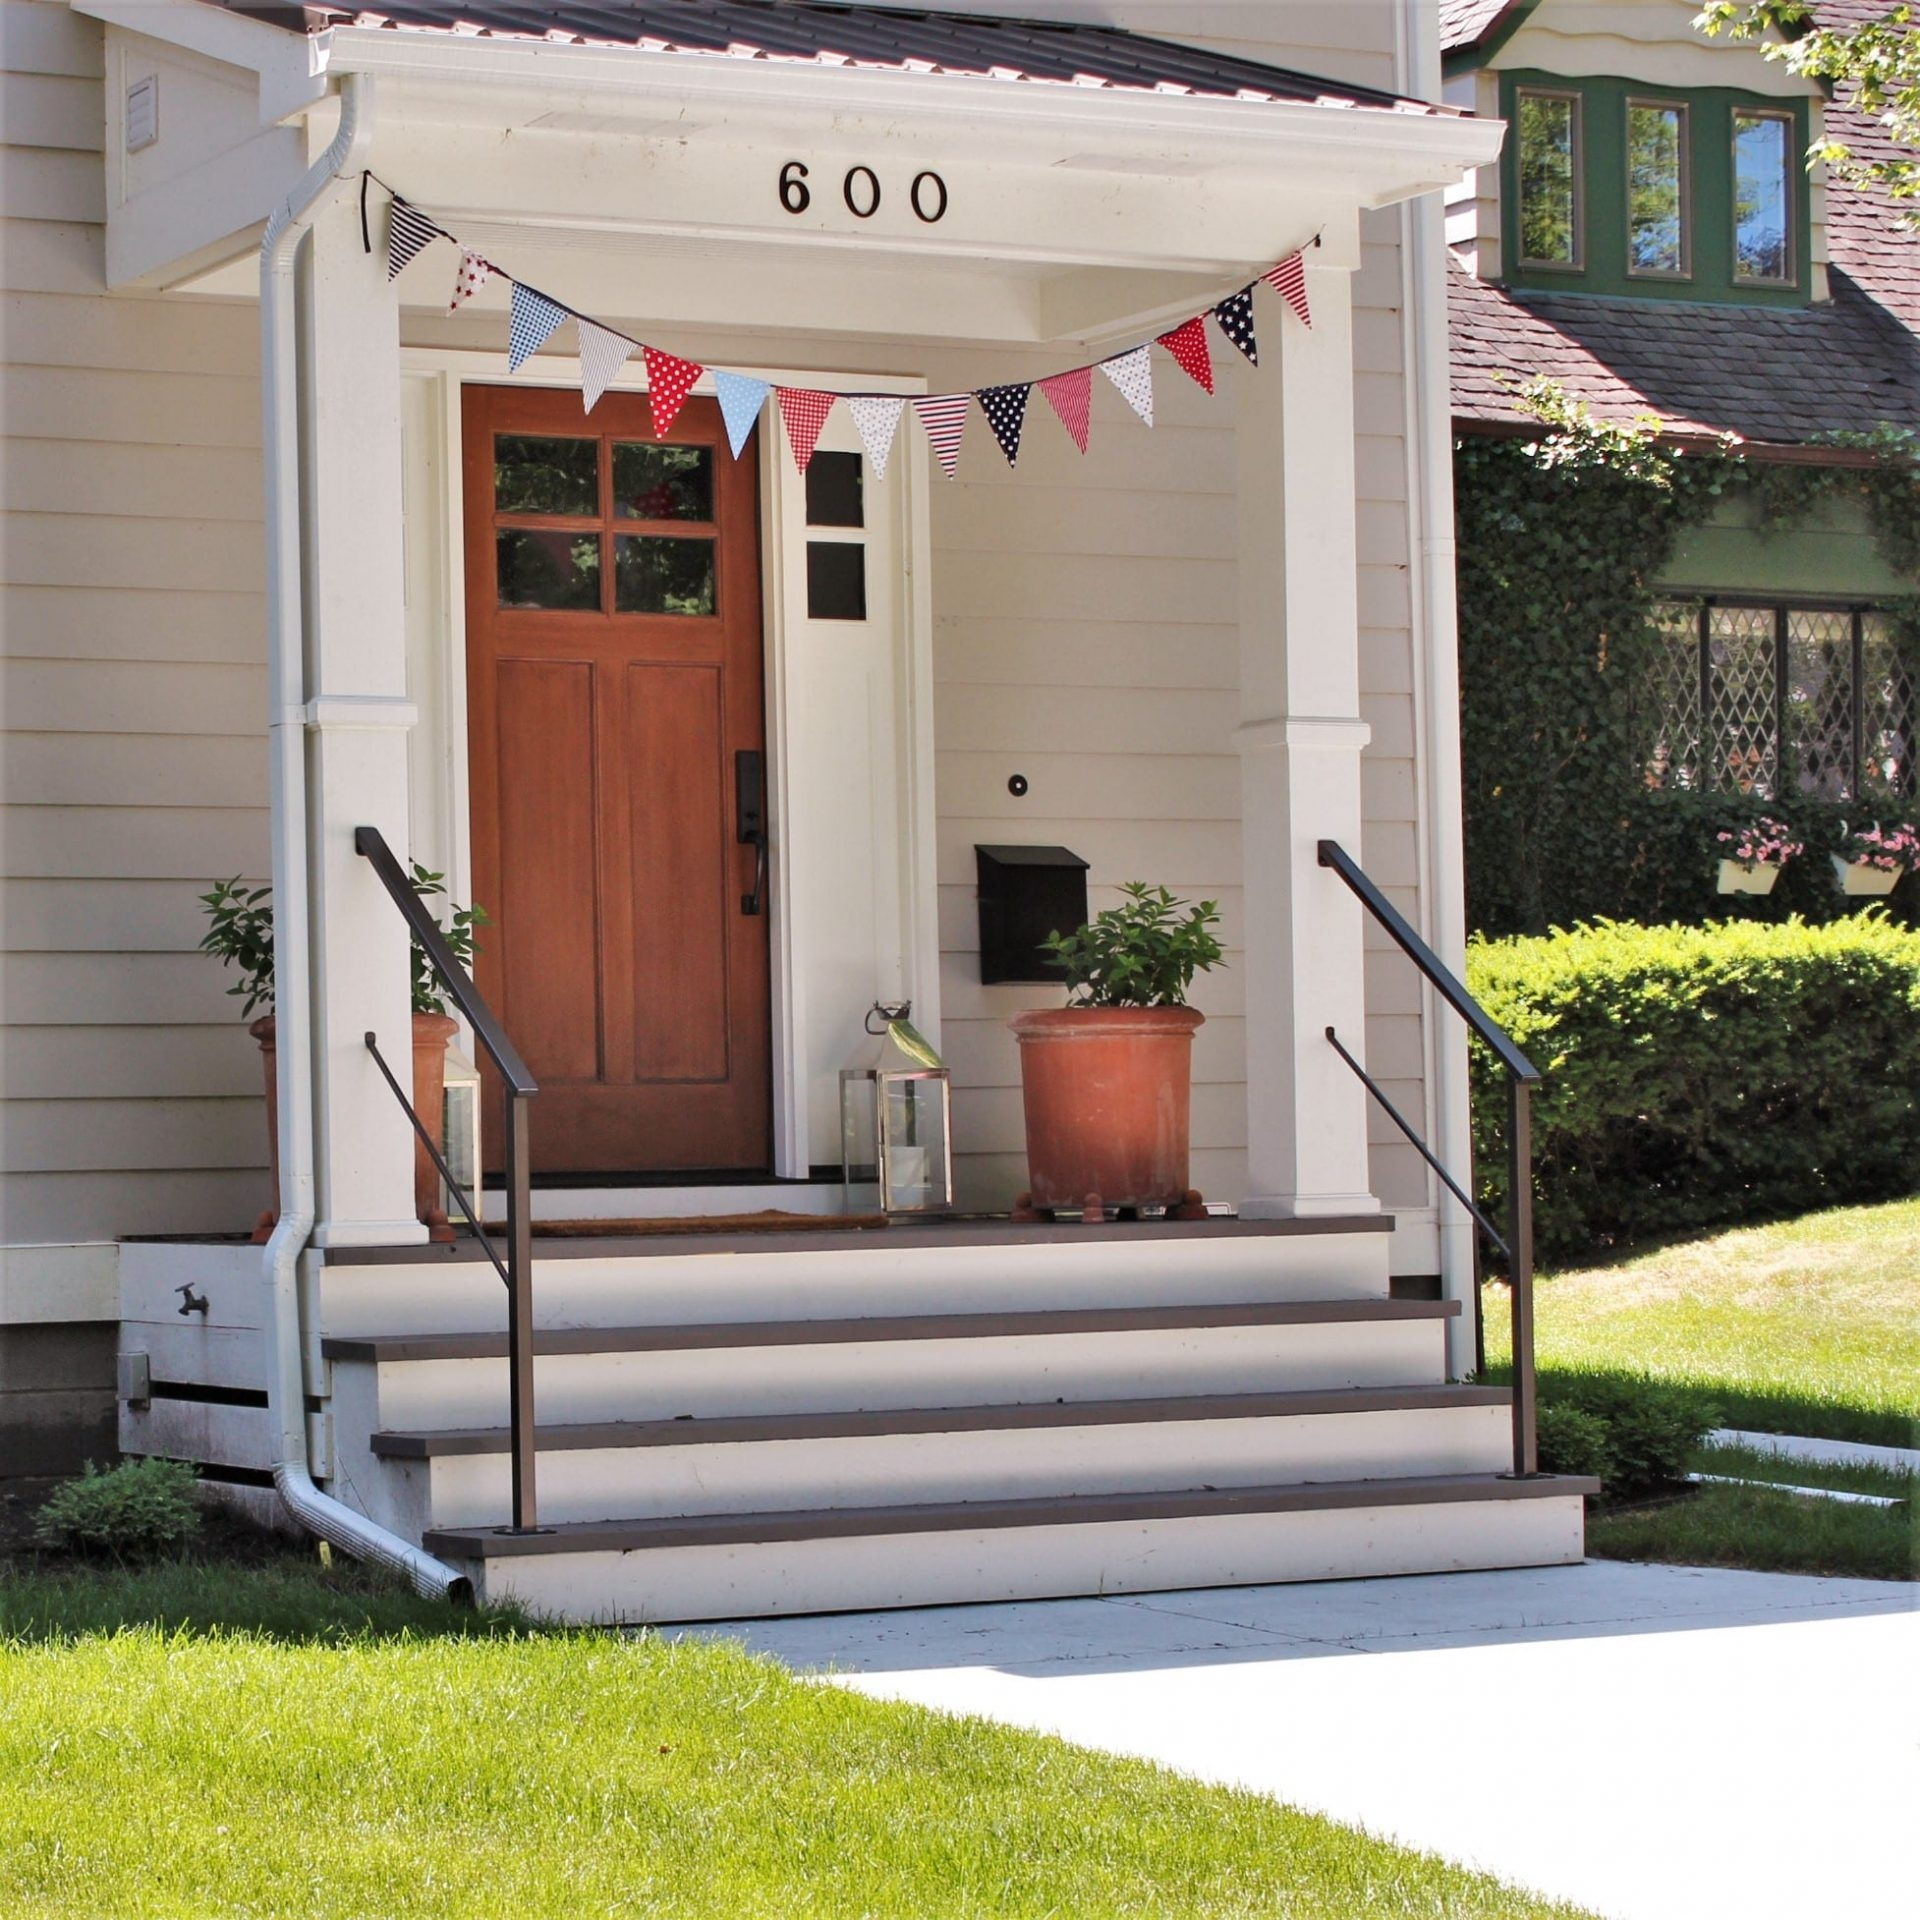 Classic Metal Handrails For Porch Steps Great Lakes Metal | Exterior Handrails For Steps | Cast Iron | 3 Step | Brushed Nickel | Front Step Railing Pipe | Garden